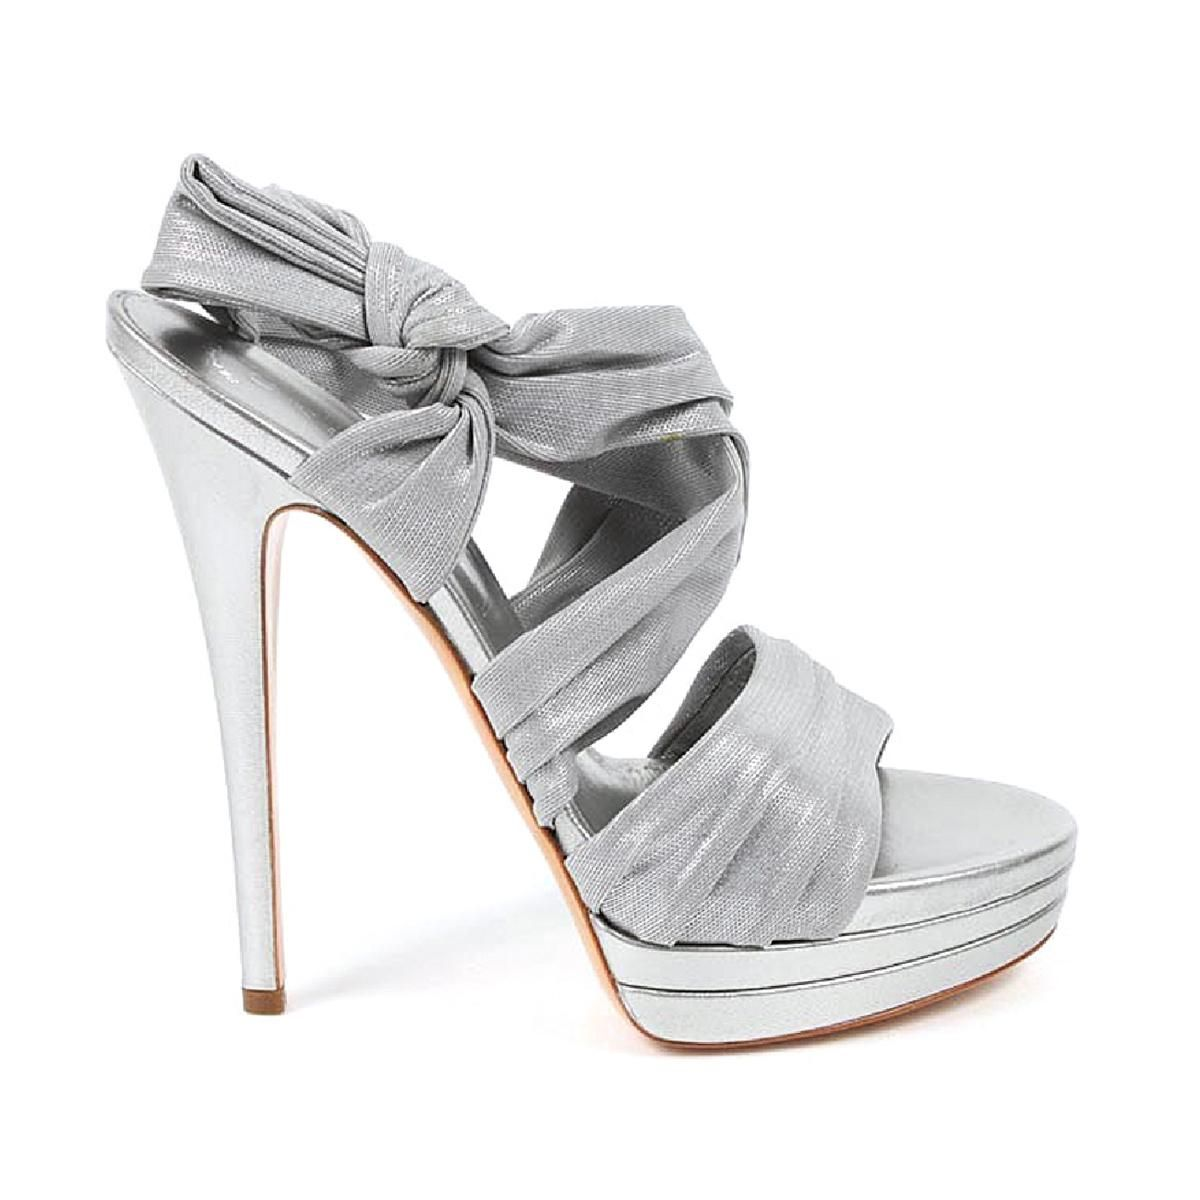 ad1025a2a These Heels Are Gorgeous❣️Add 2 Cart Today! Casadei Ladies Stiletto Heel  Sandals W Silver Leather Fabric Shoes - Women - Sandals - Keyomi-Sook   stiletto ...